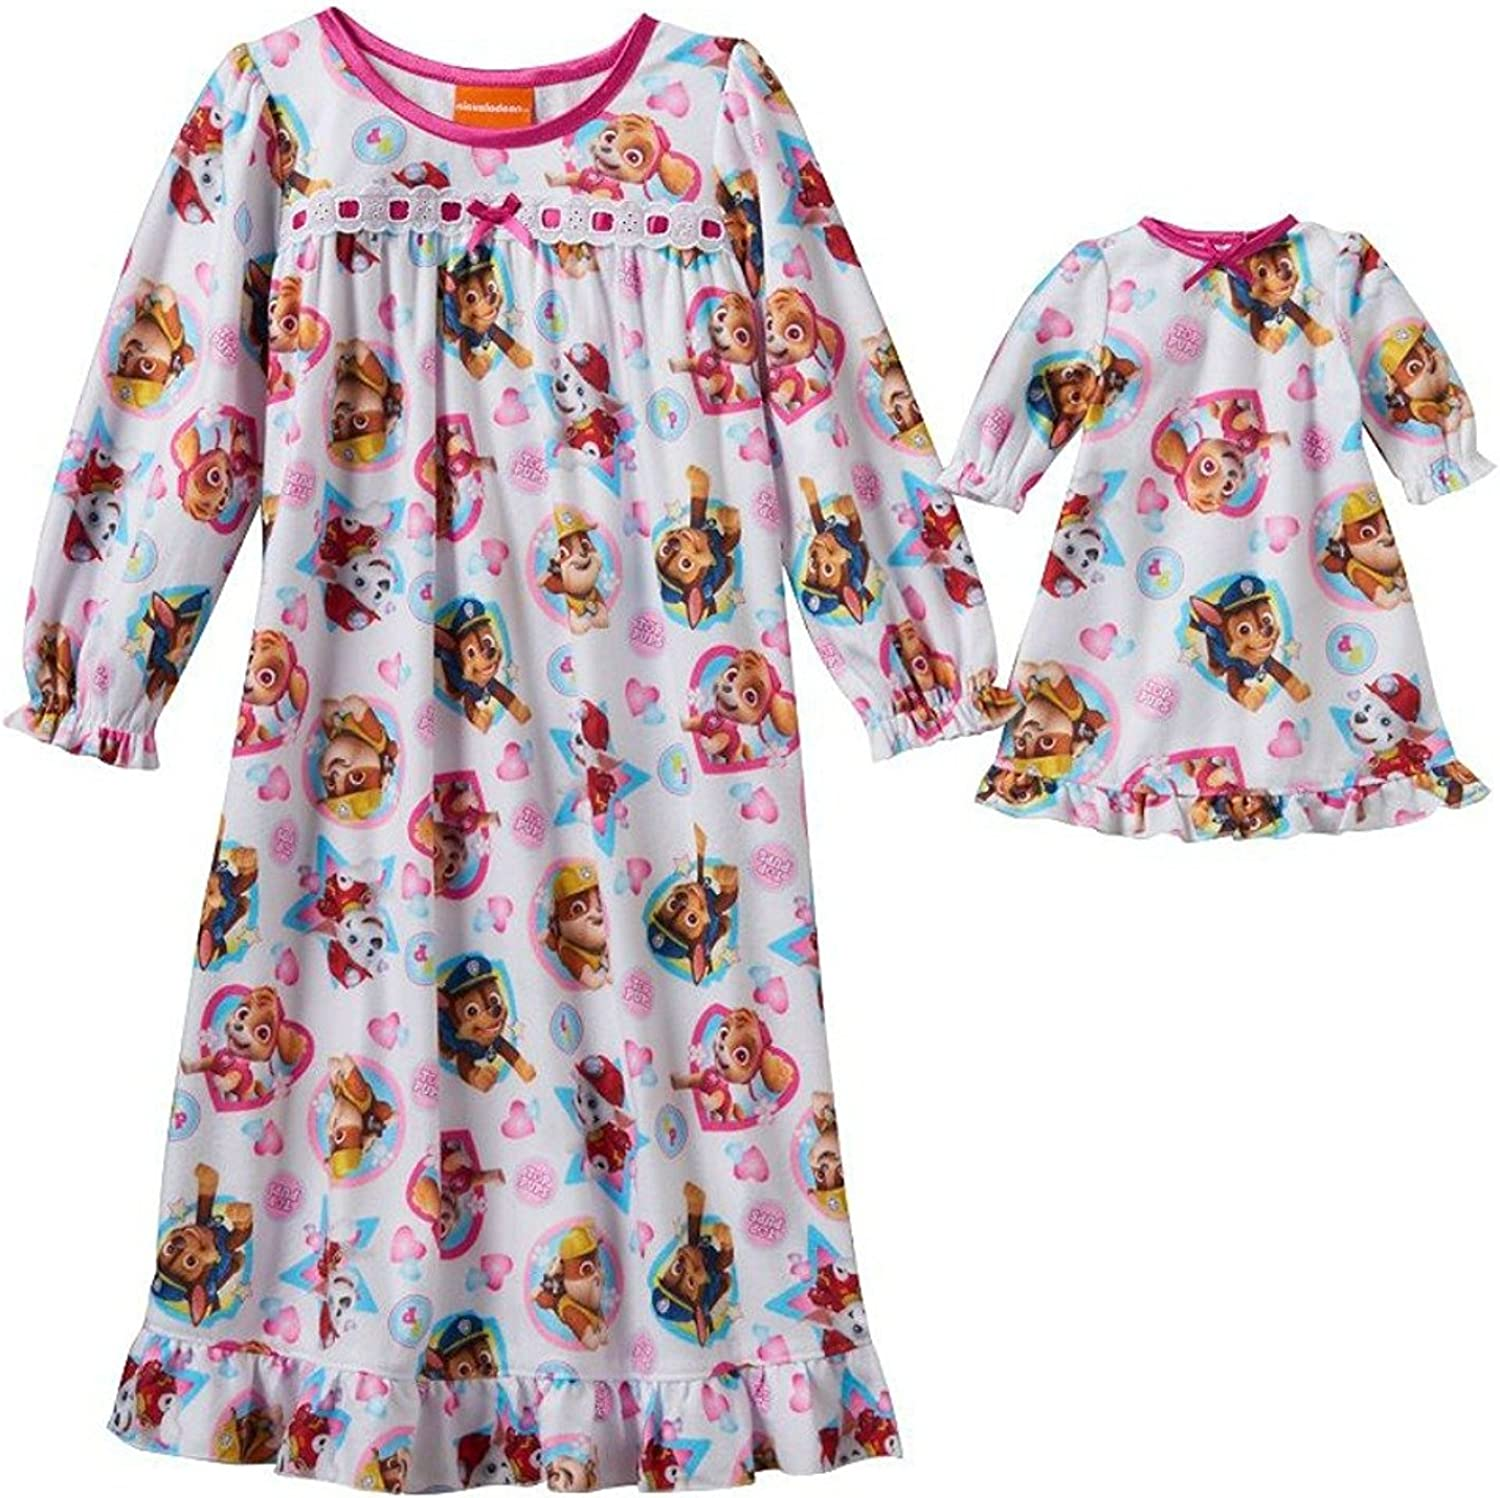 Girls Nightgown Matching 18 Doll Gown PAW Patrol 3T 4T